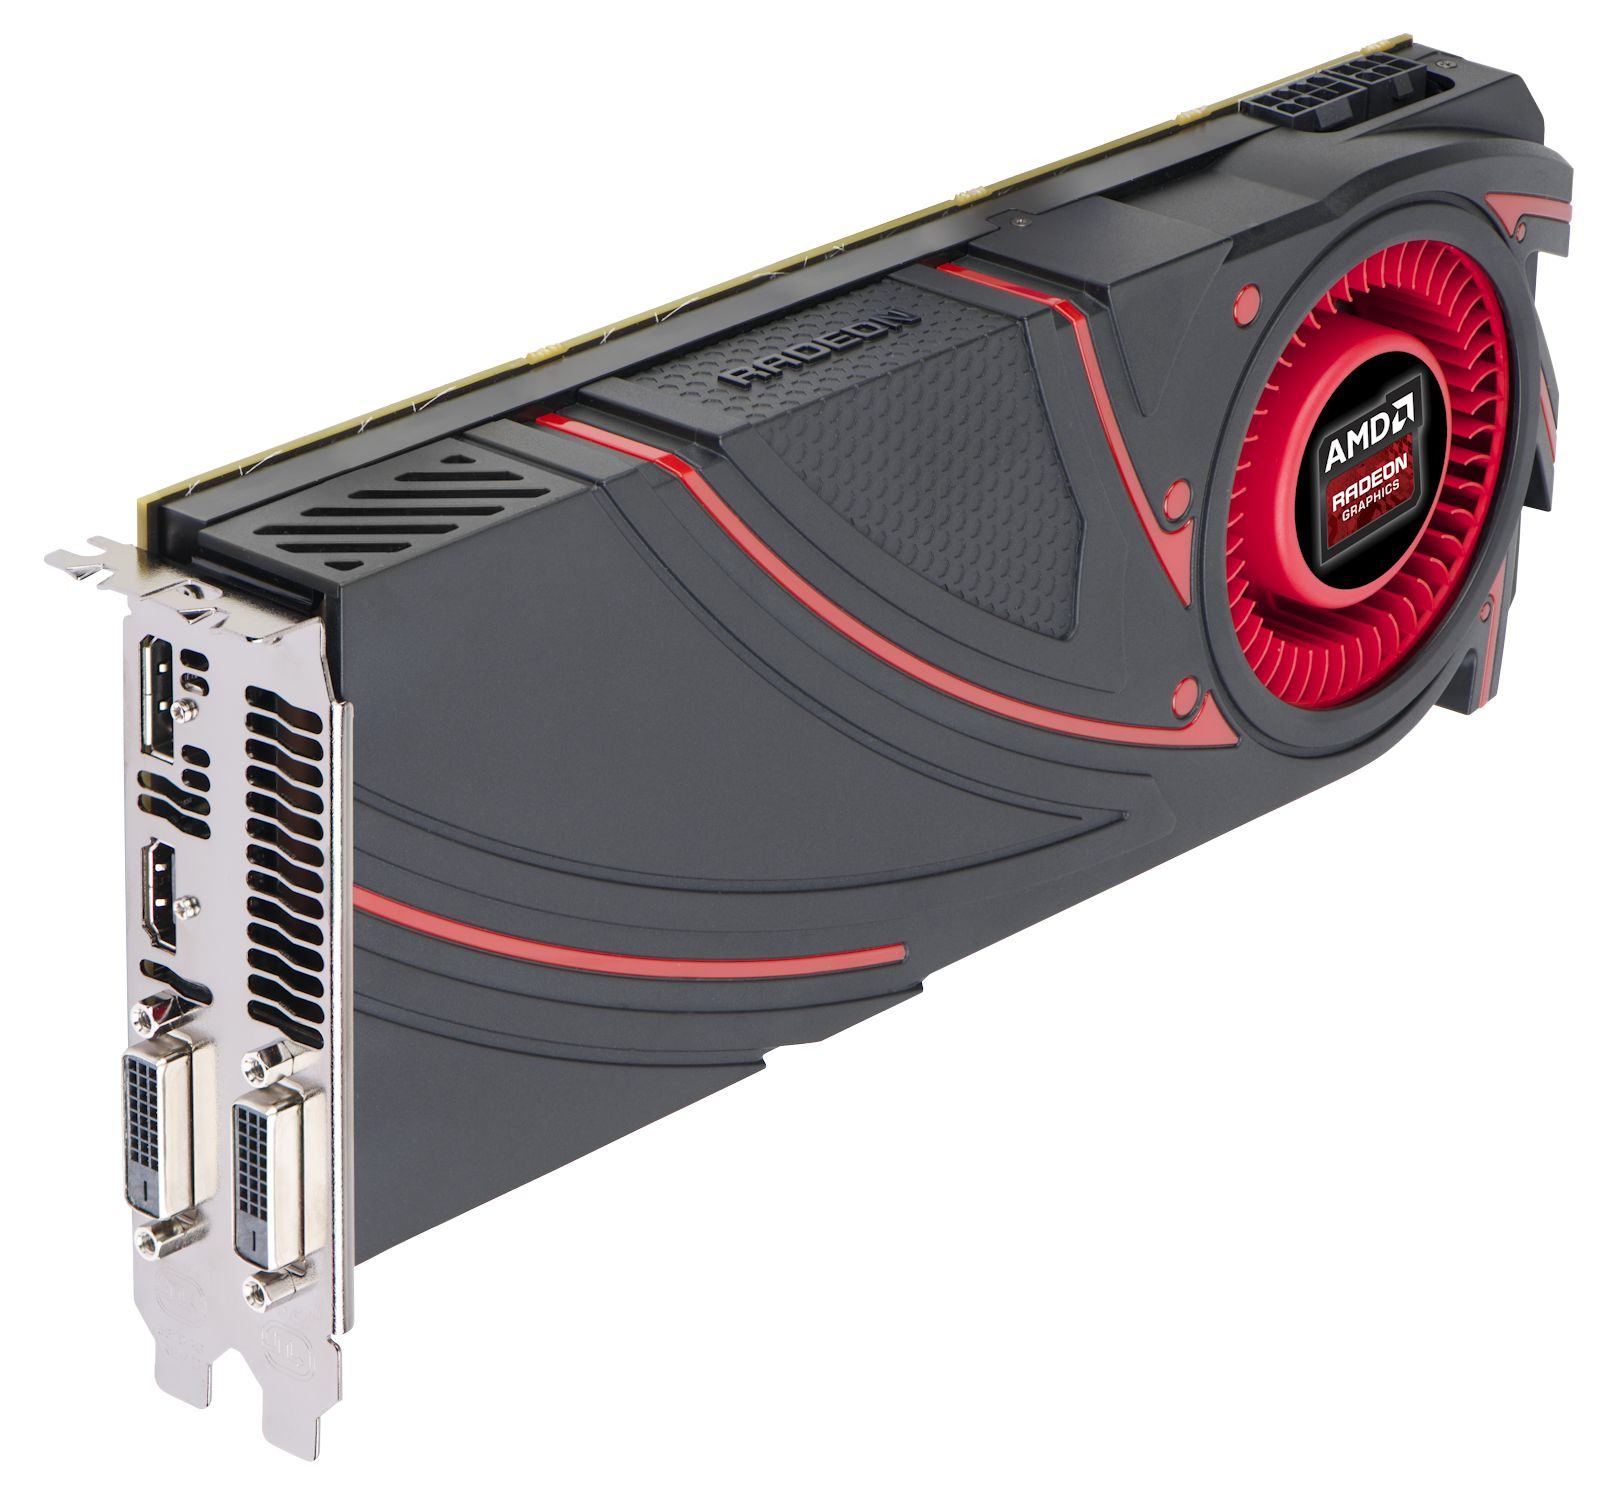 AMD Radeon R9 290X and R9 290 European pricing unveiled